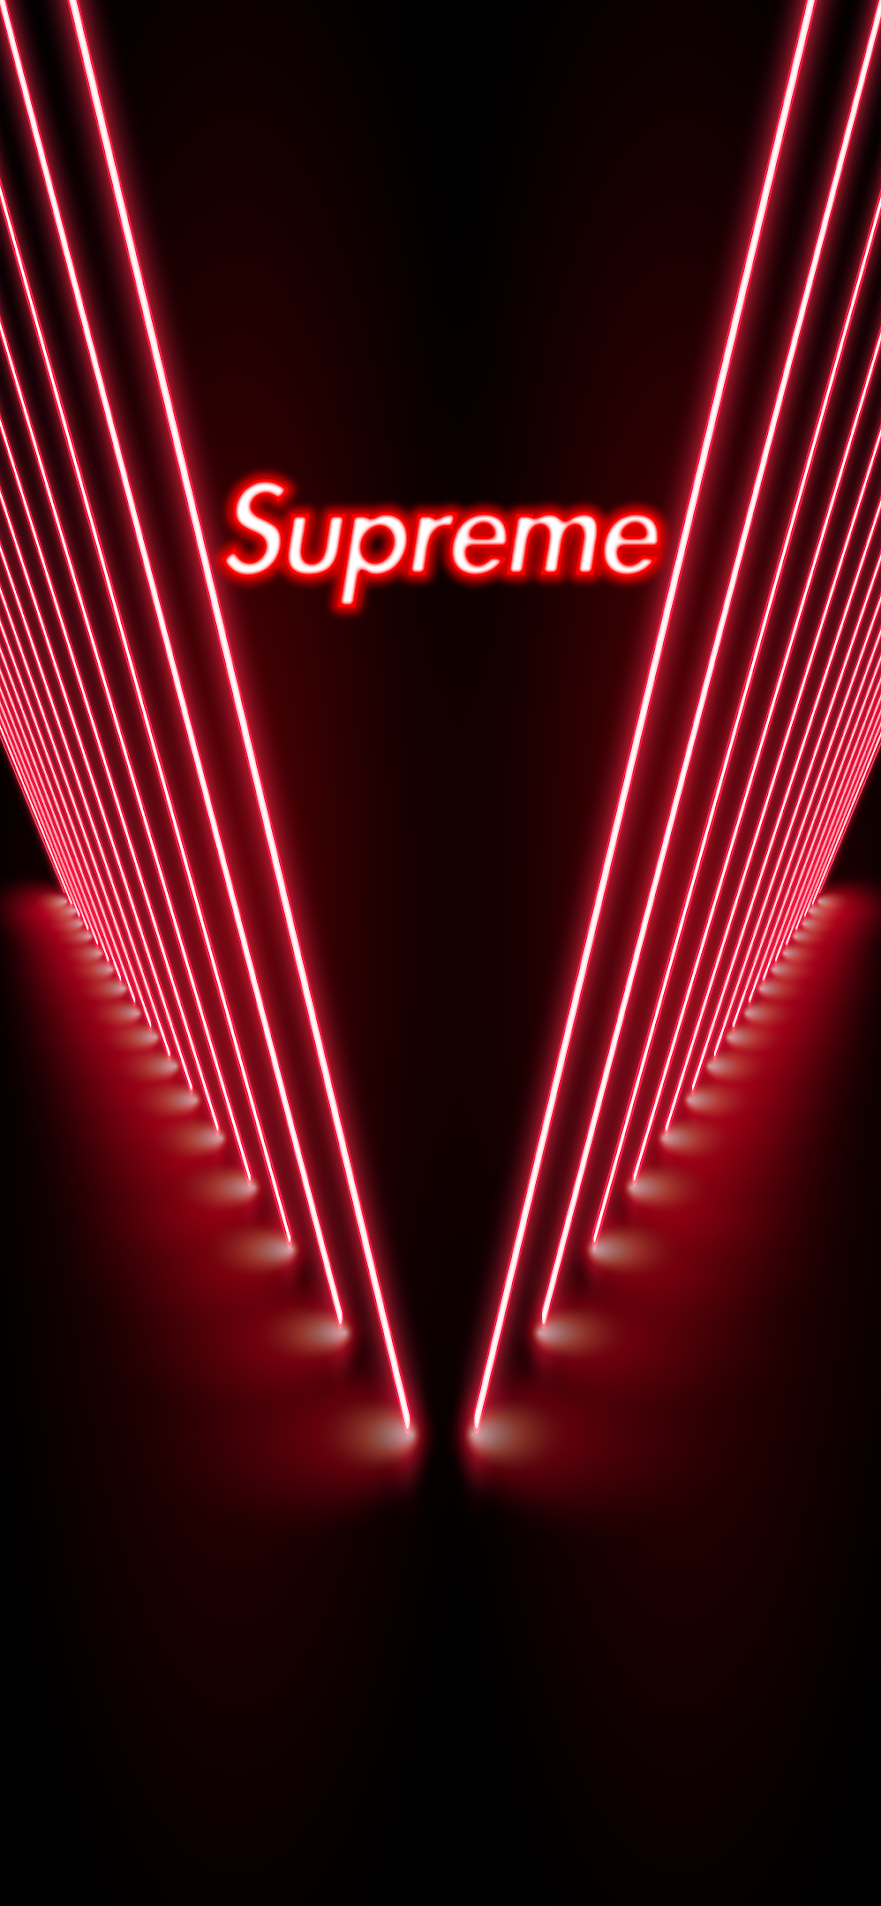 supreme red neon background for mobile iphone android